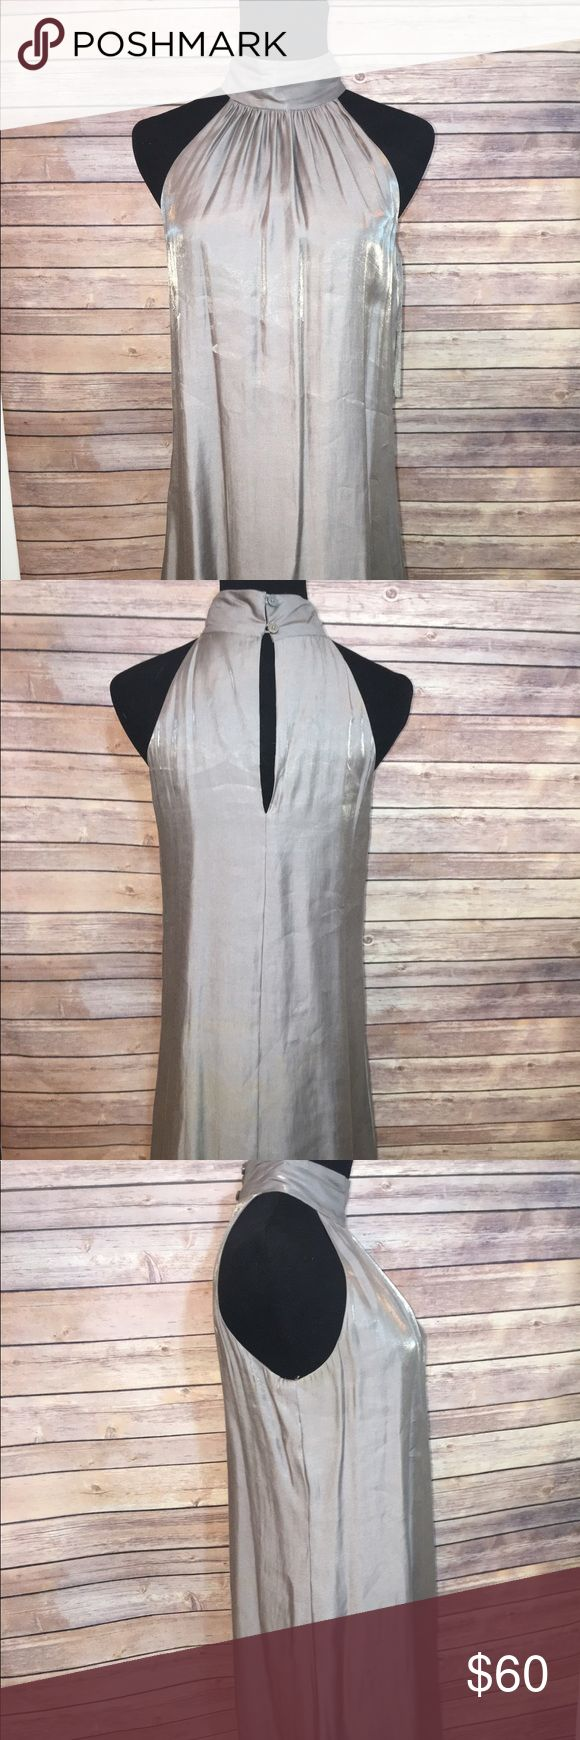 Simple silver dress Great dress for a fancy night out with great shine to it I've used it for Christmas party years ago and haven't since , this is a perfect dress if an early pregnancy Michael Kors Dresses Strapless